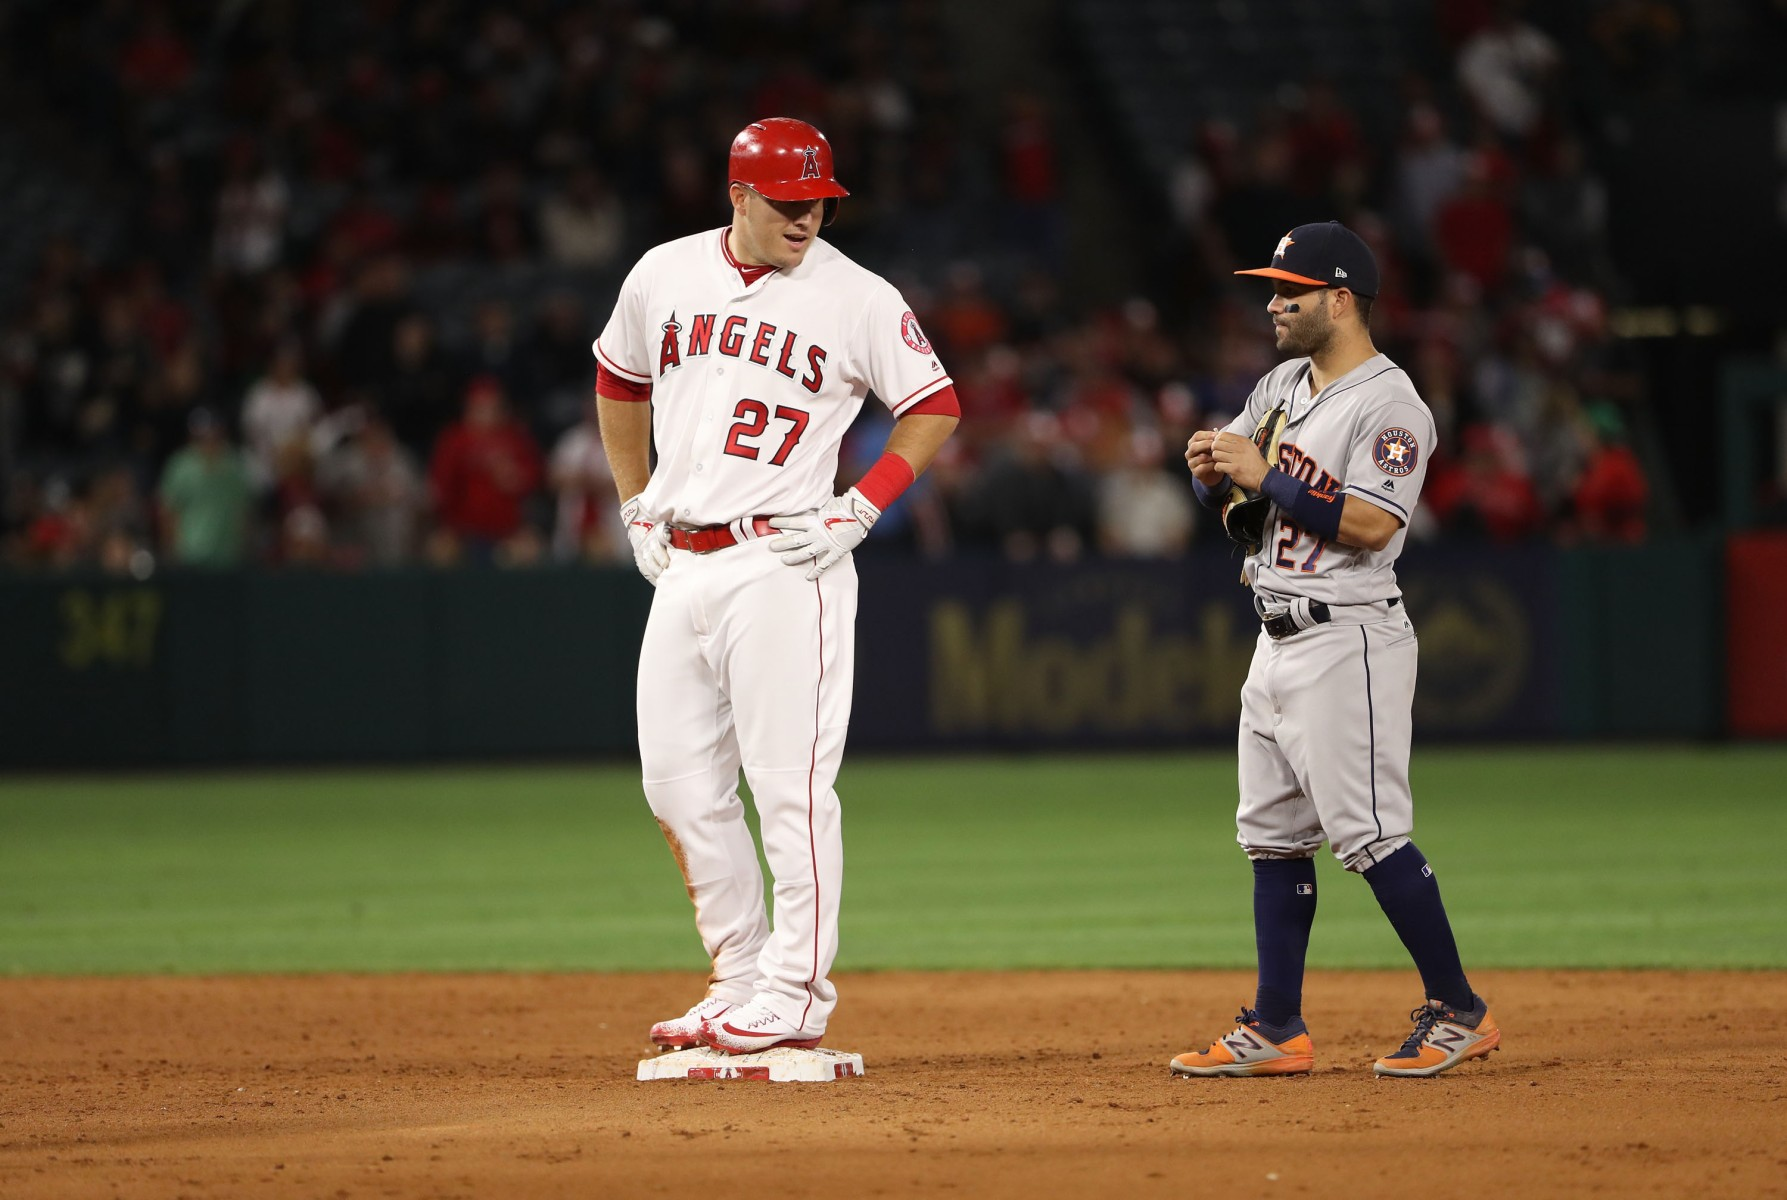 Mike Trout #27 of the Los Angeles Angels of Anaheim talks to Jose Altuve #27 of the Houston Astros during the ninth inning of their MLB game at Angel Stadium of Anaheim on May 5, 2017 in Anaheim, California. The Astros defeated the Angels 7-6 in the tenth inning.  (Photo by Victor Decolongon/Getty Images)